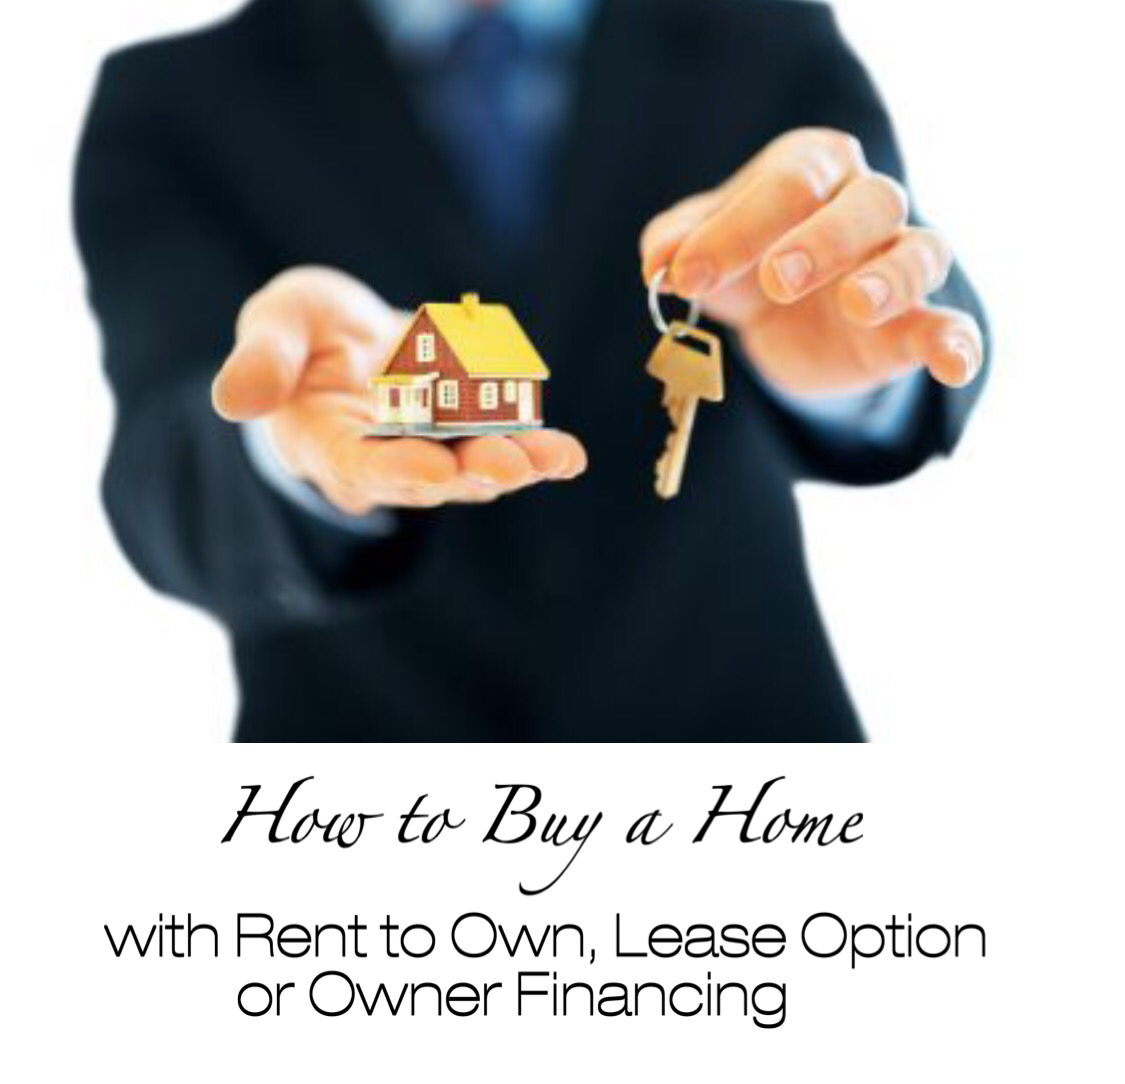 Buying A Home With Alternative Options Lease Option Rent To Own